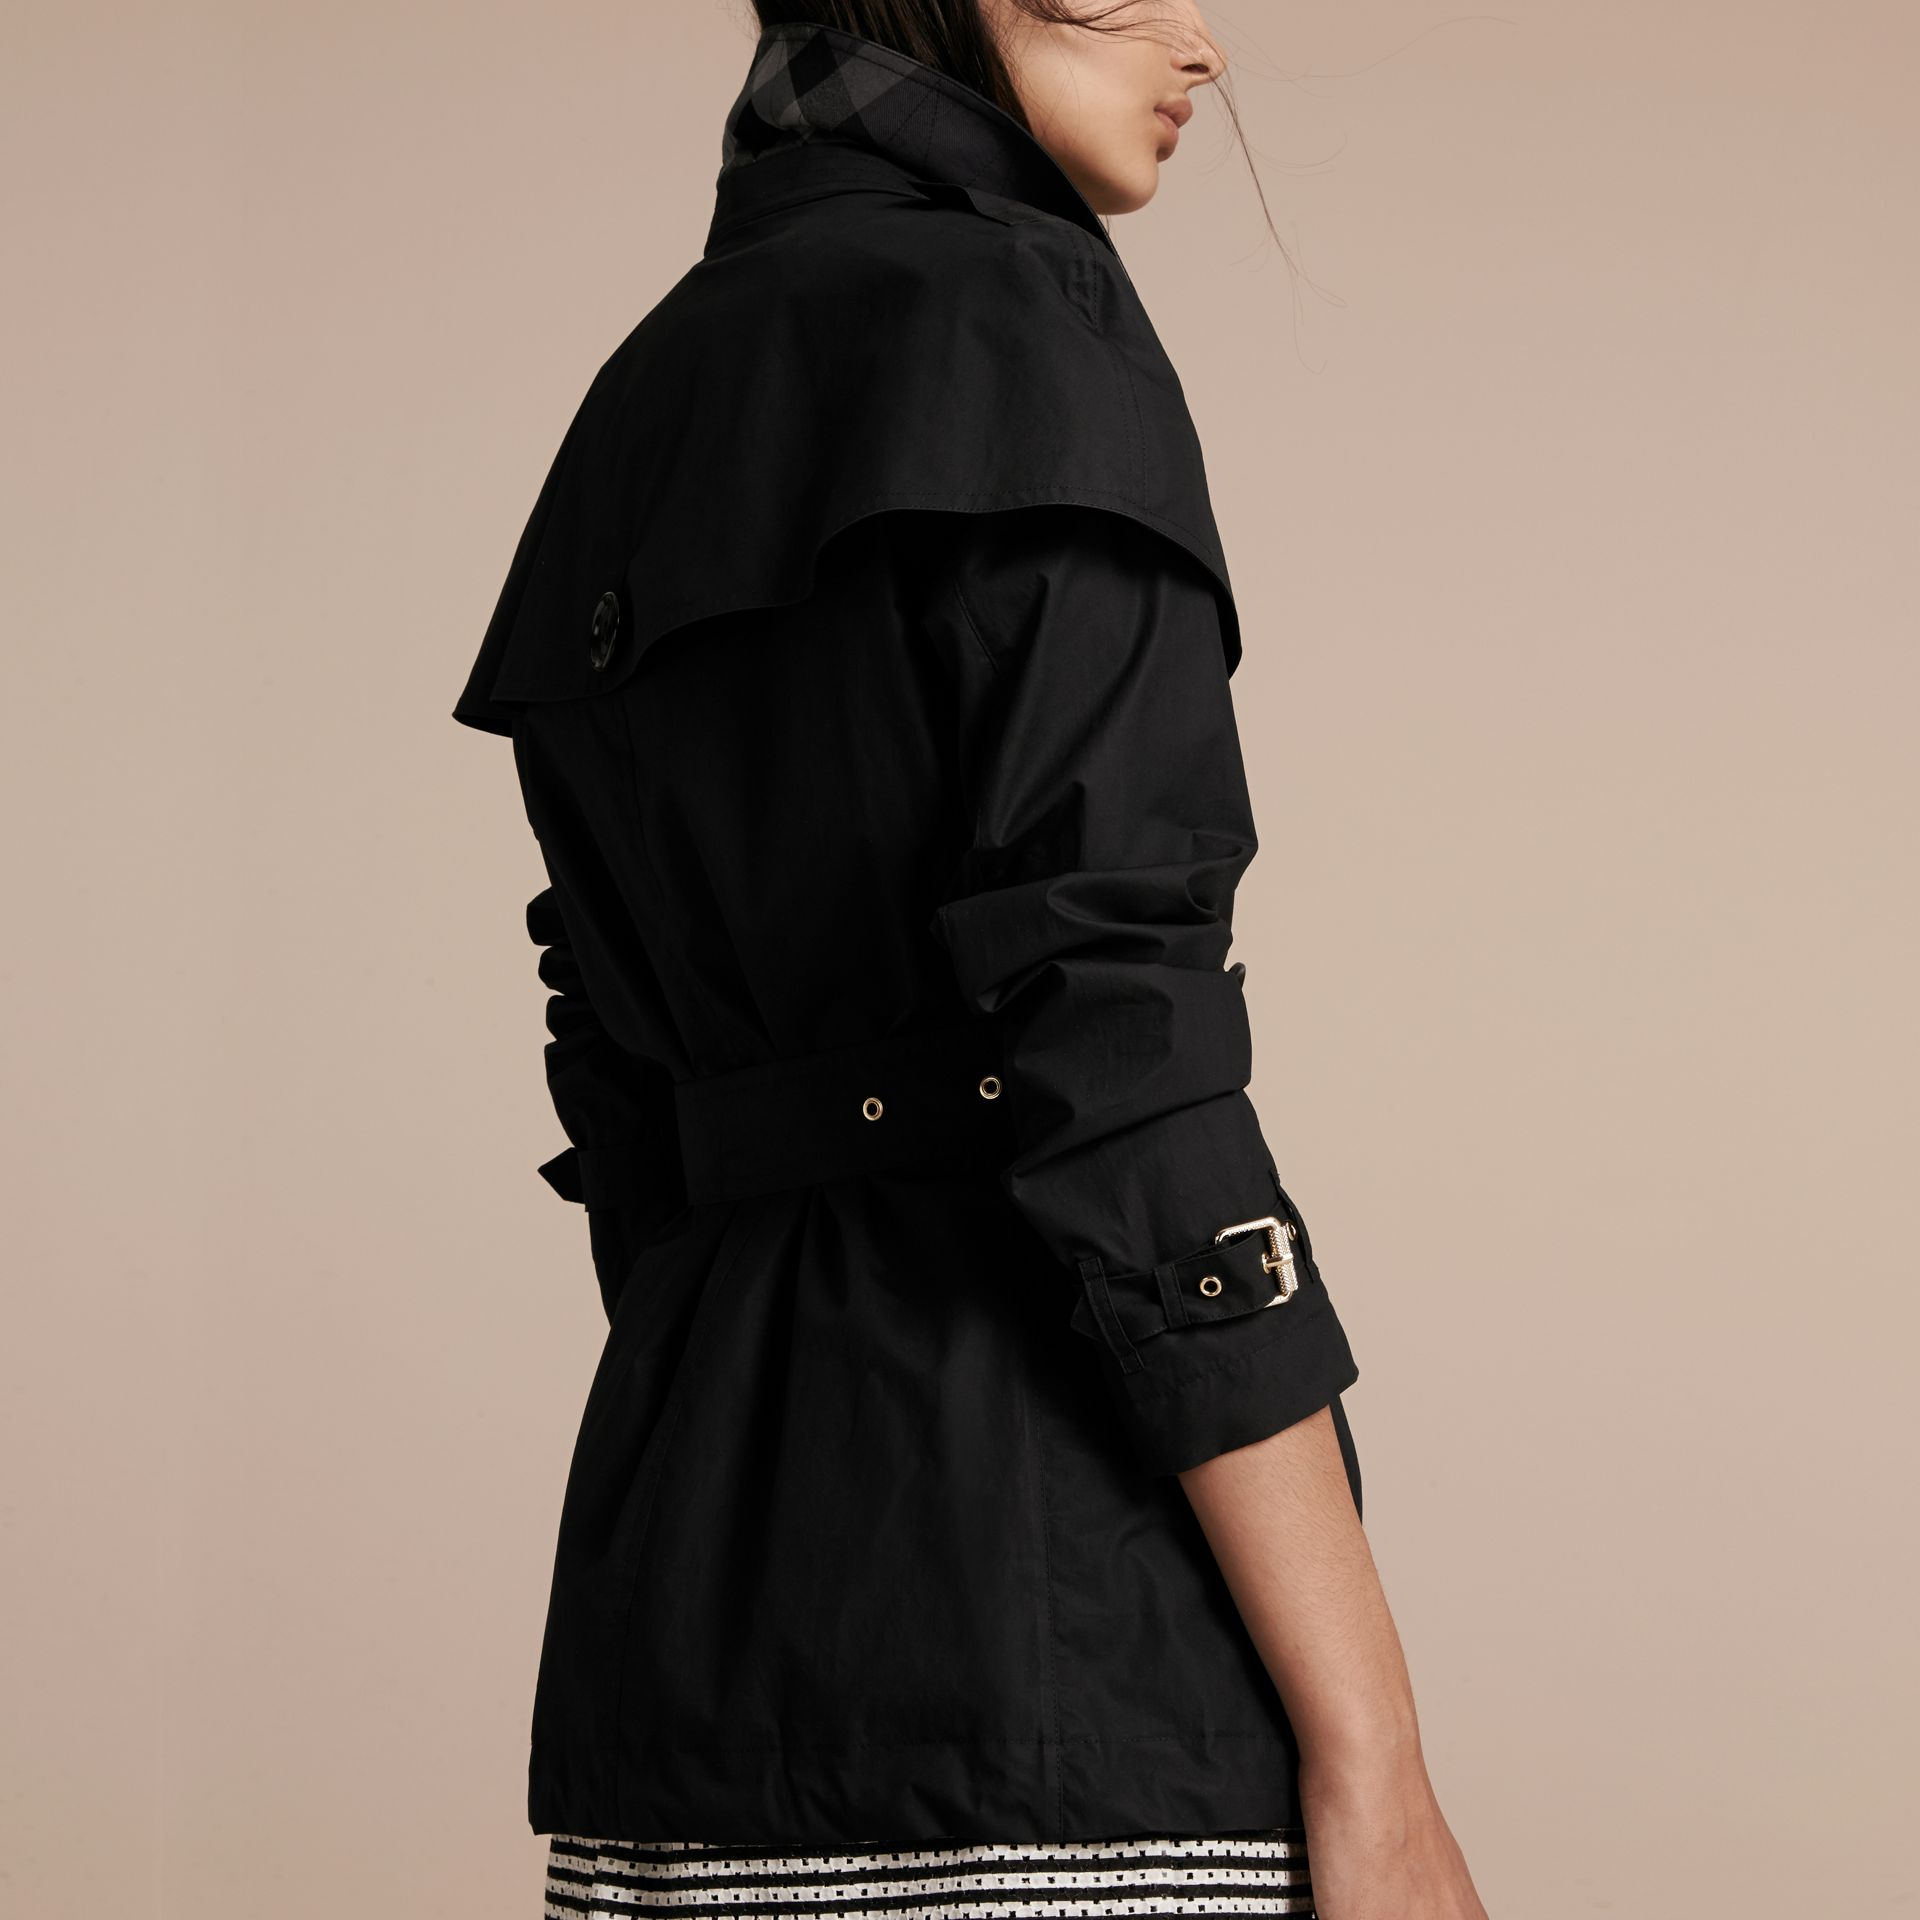 Black Lightweight Cape Detail Cotton Trench Coat Black - gallery image 3